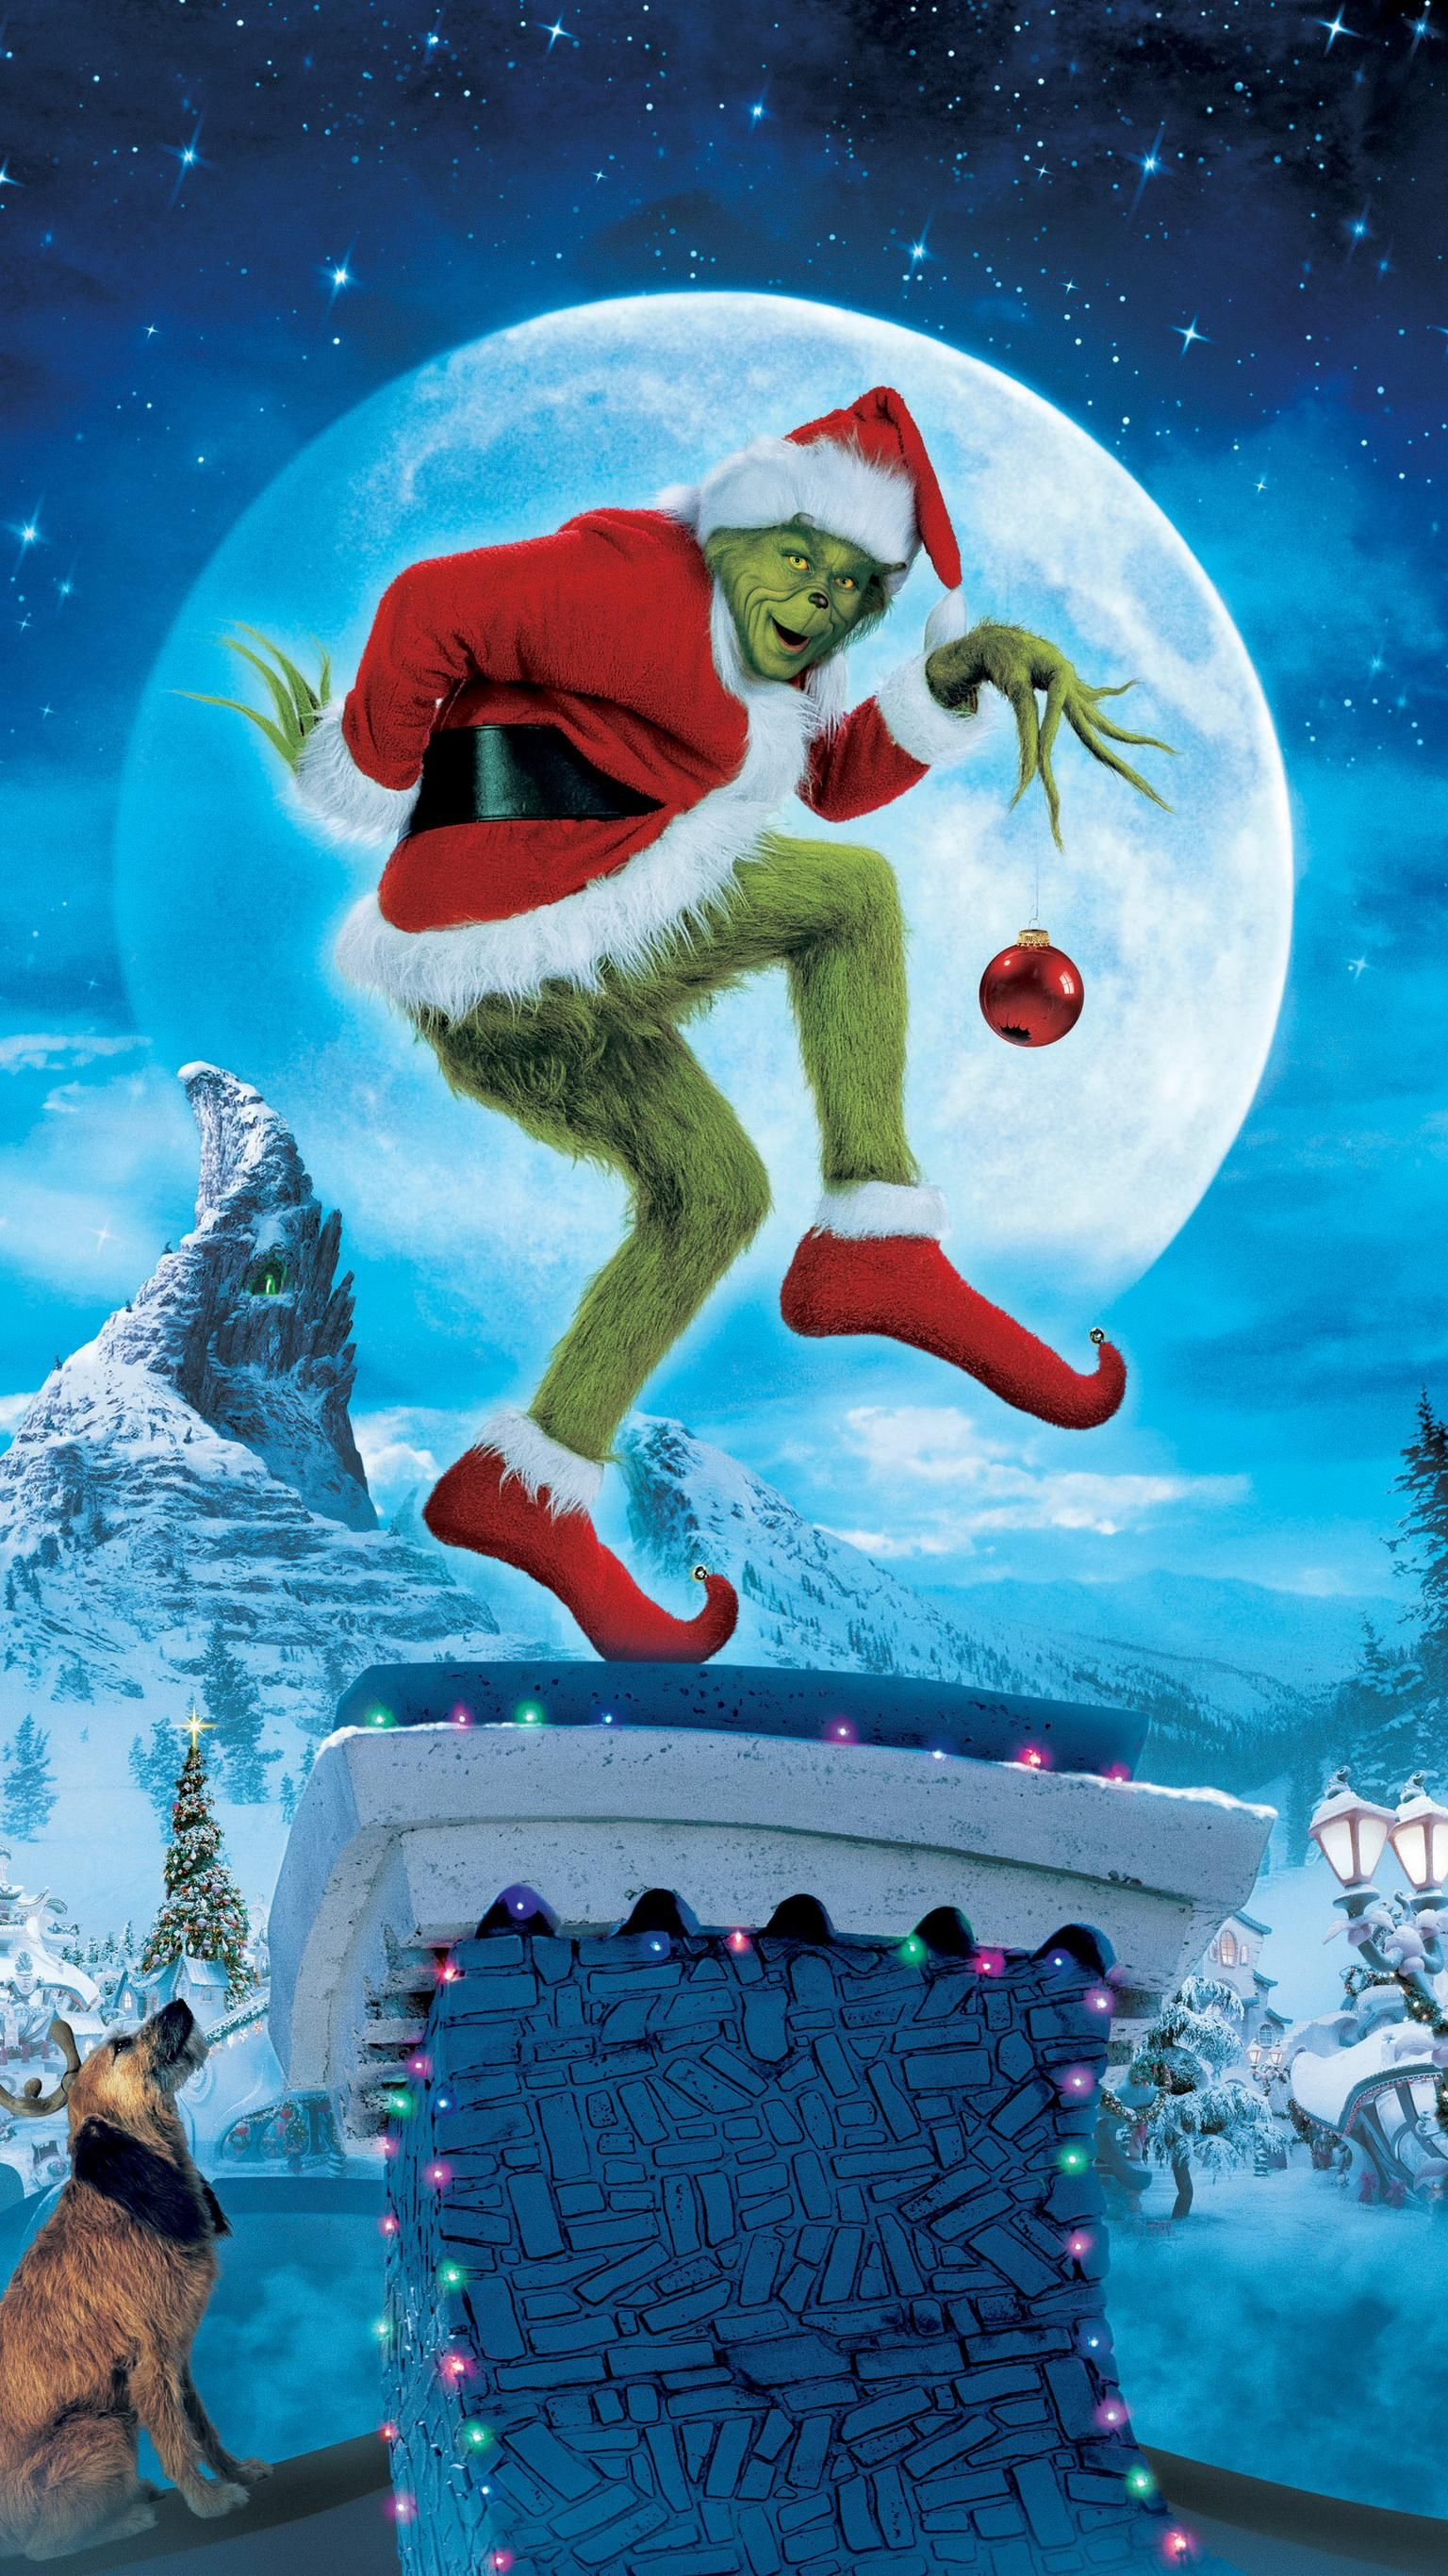 How the Grinch Stole Christmas (2000) Phone Wallpaper in